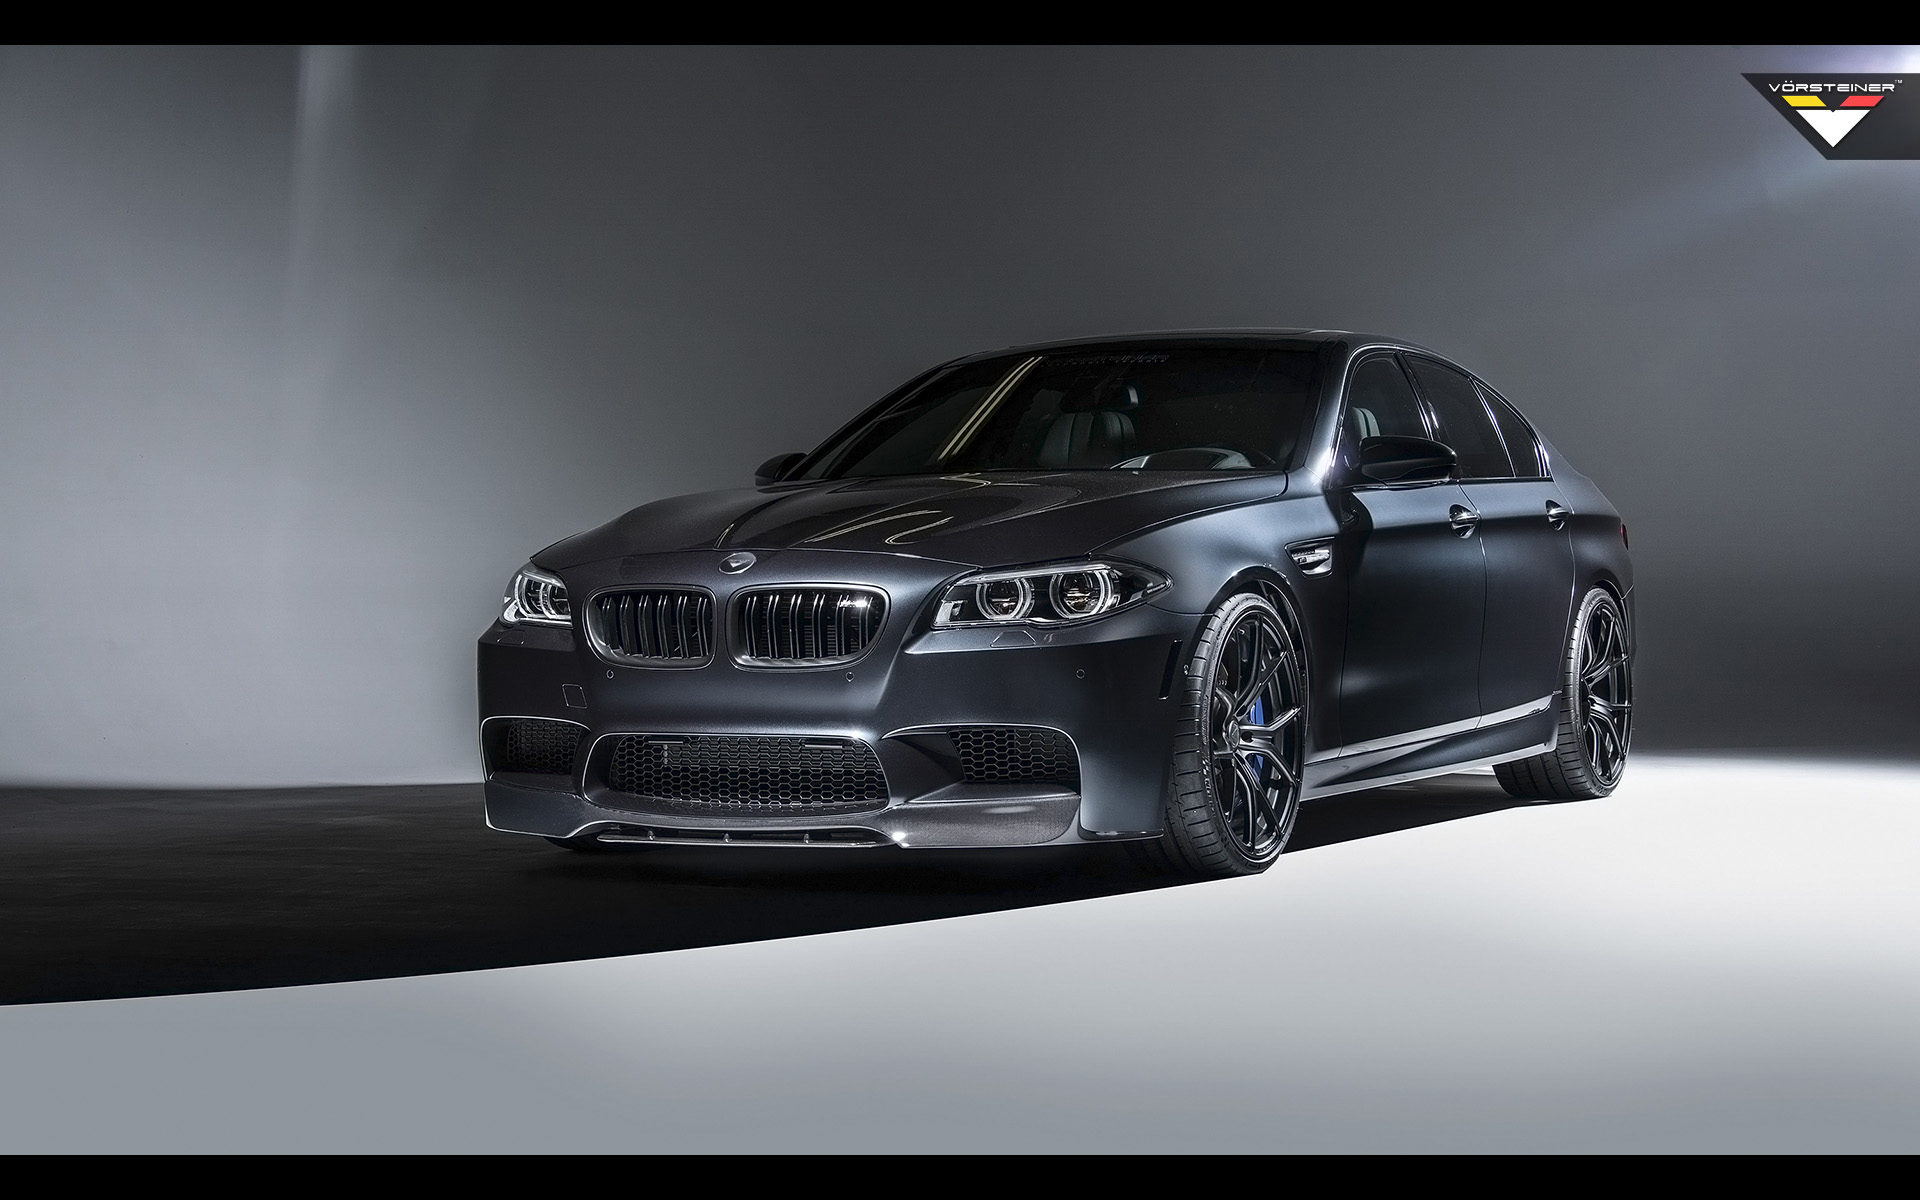 2014 Vorsteiner Bmw F10 M5 Wallpaper Hd Car Wallpapers Id 3953